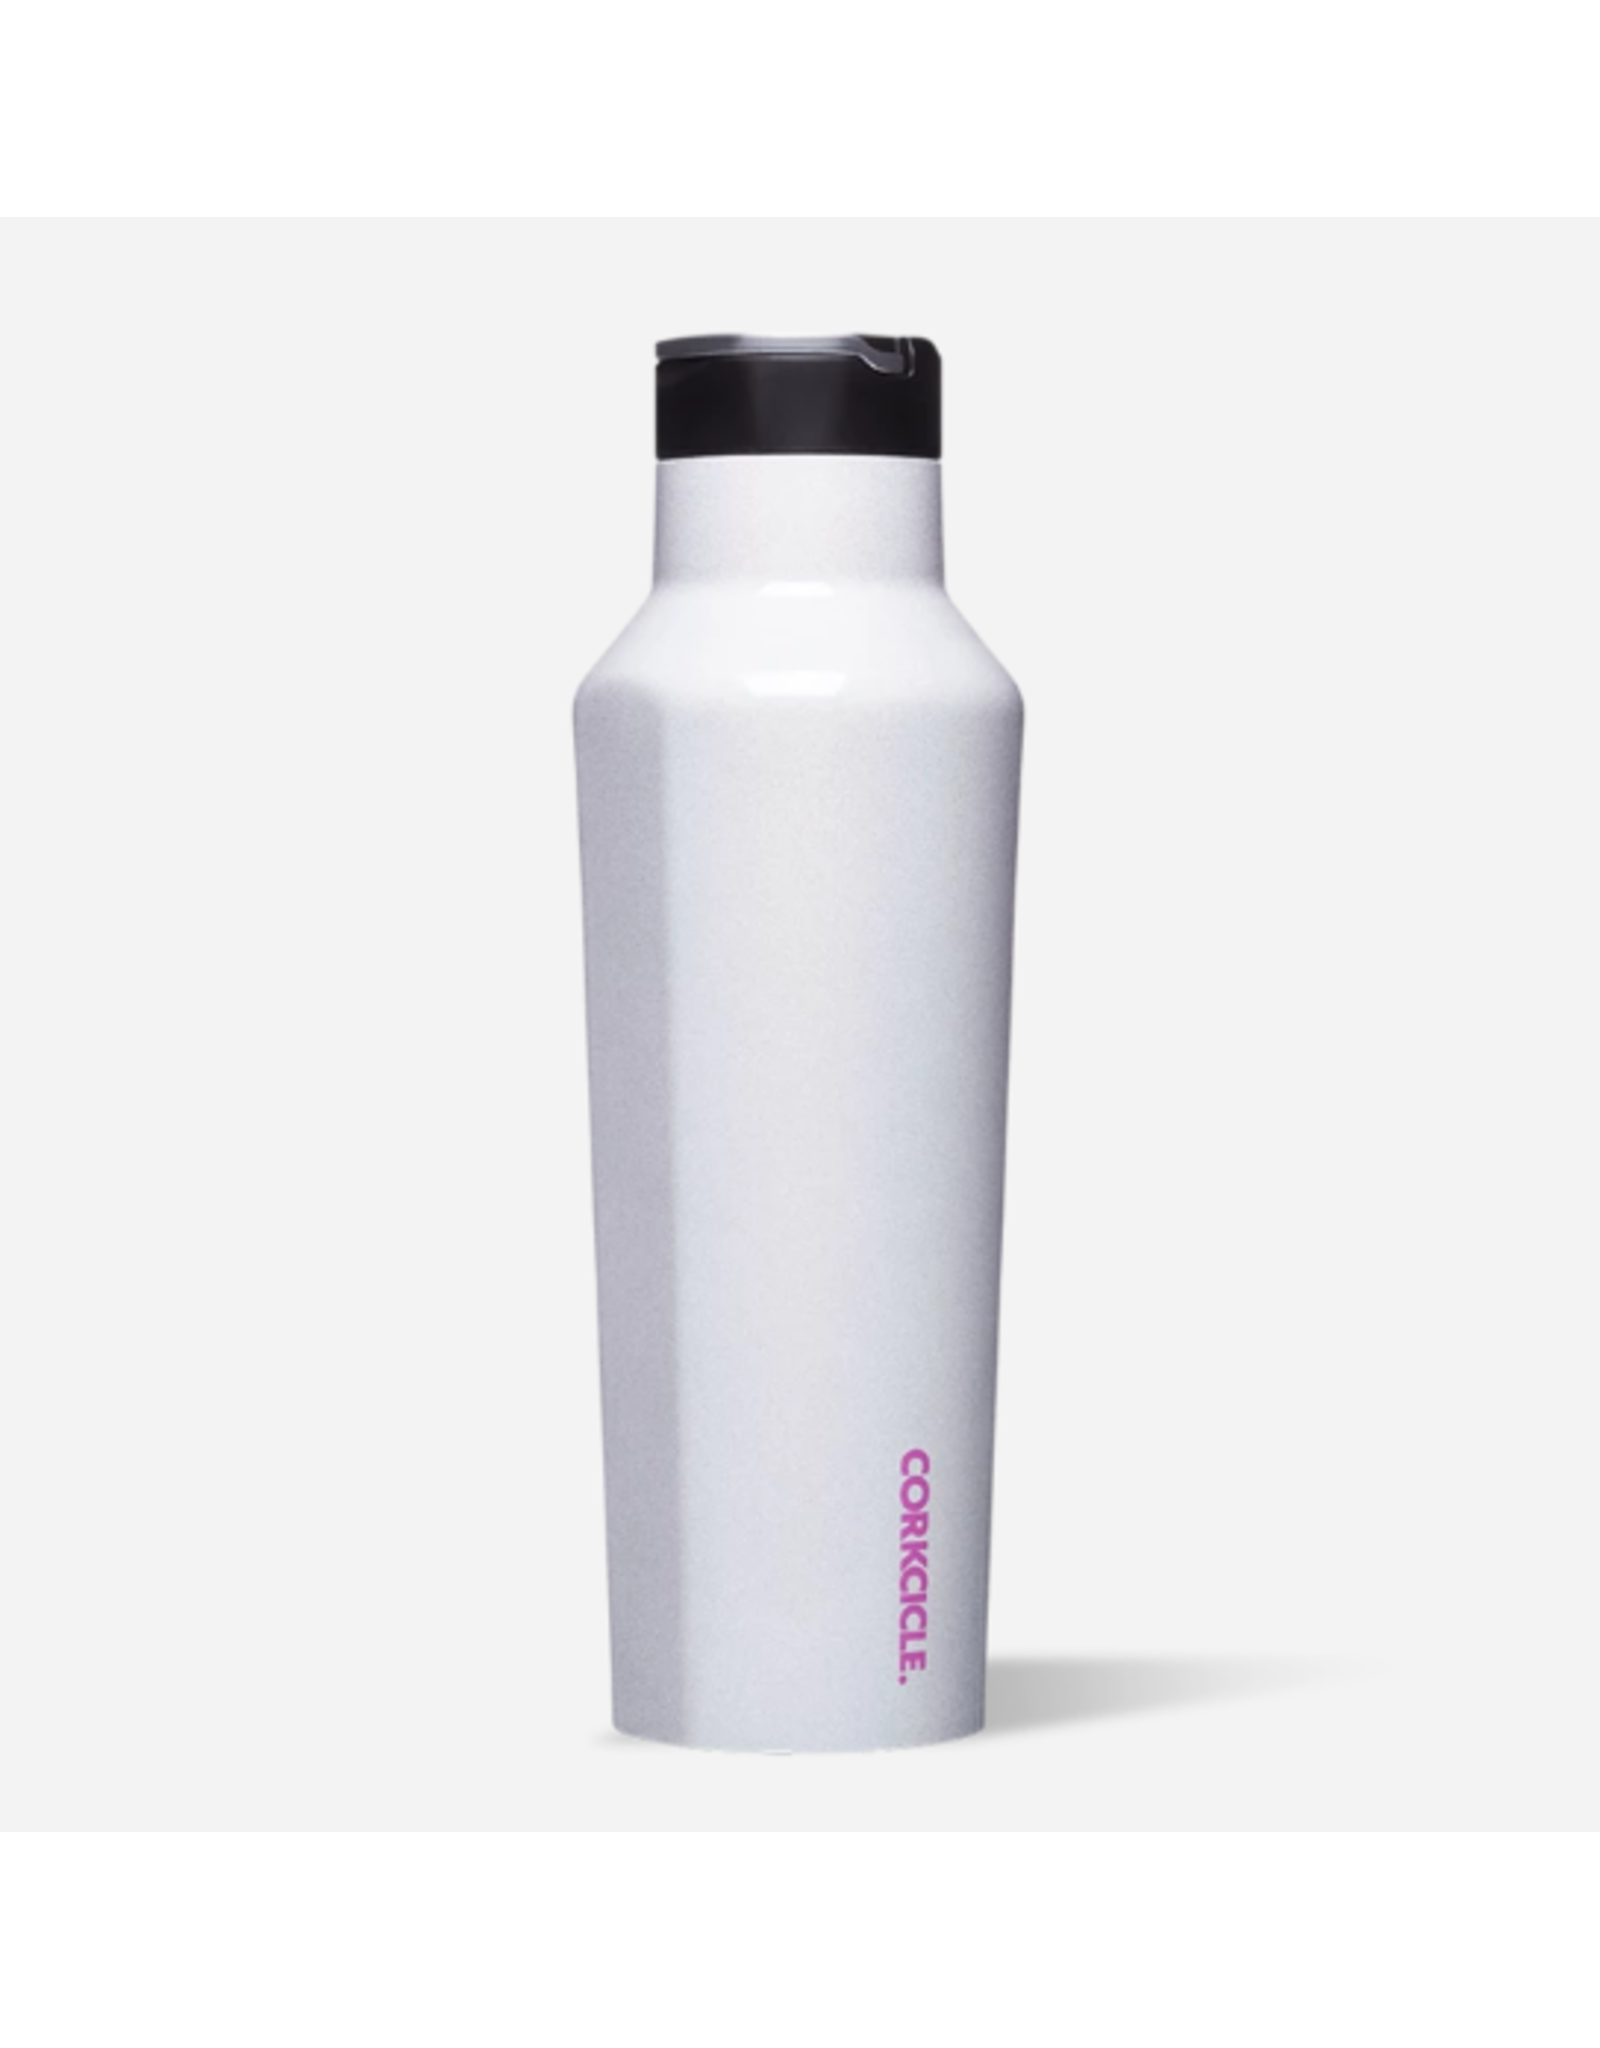 Corkcicle Corkcicle SPORT CANTEEN 20 oz